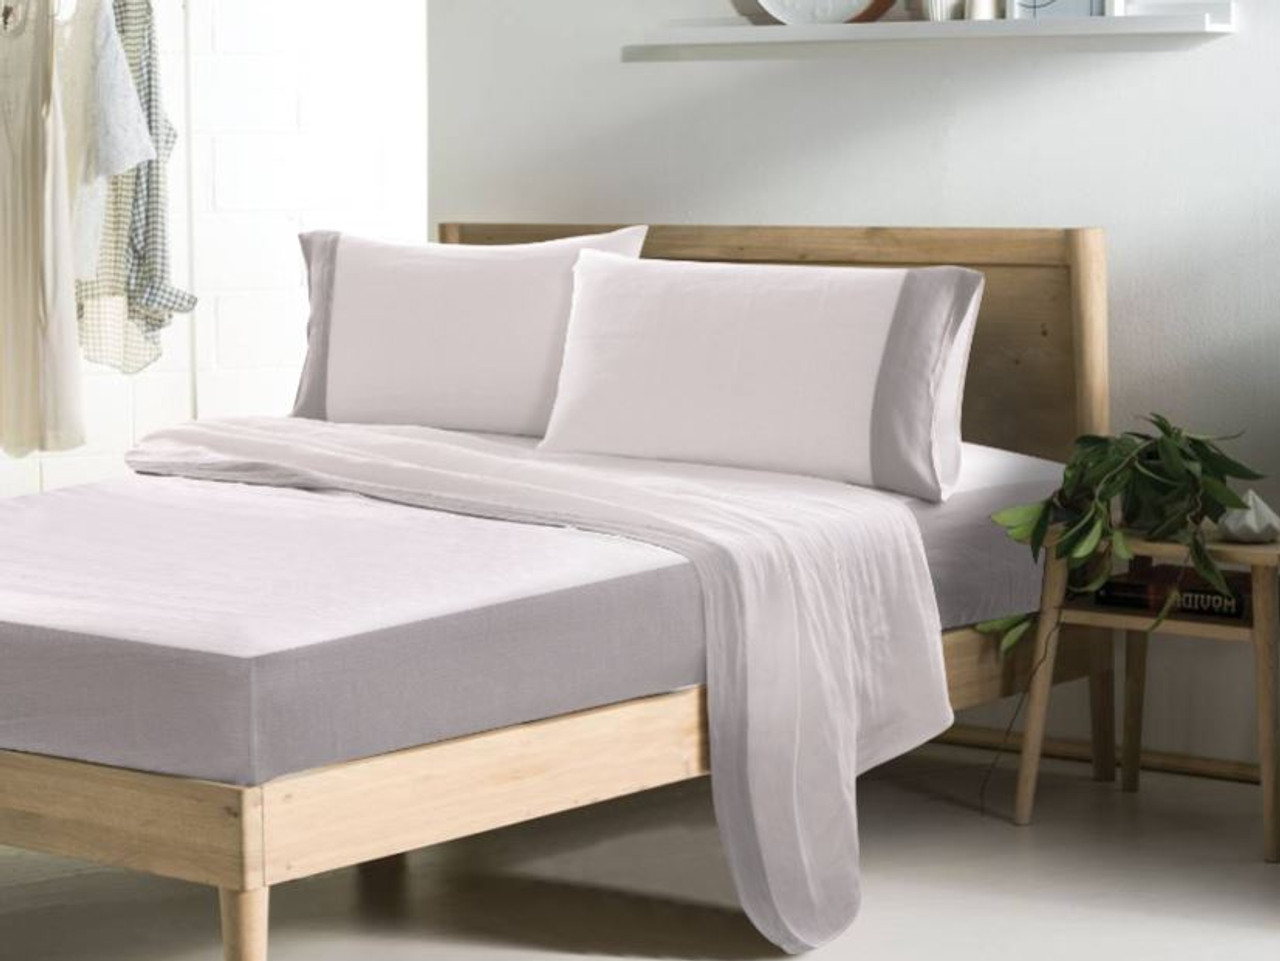 Bi-Chome Linen Bed Sheets | Handcrafted by Superior Custom Linens